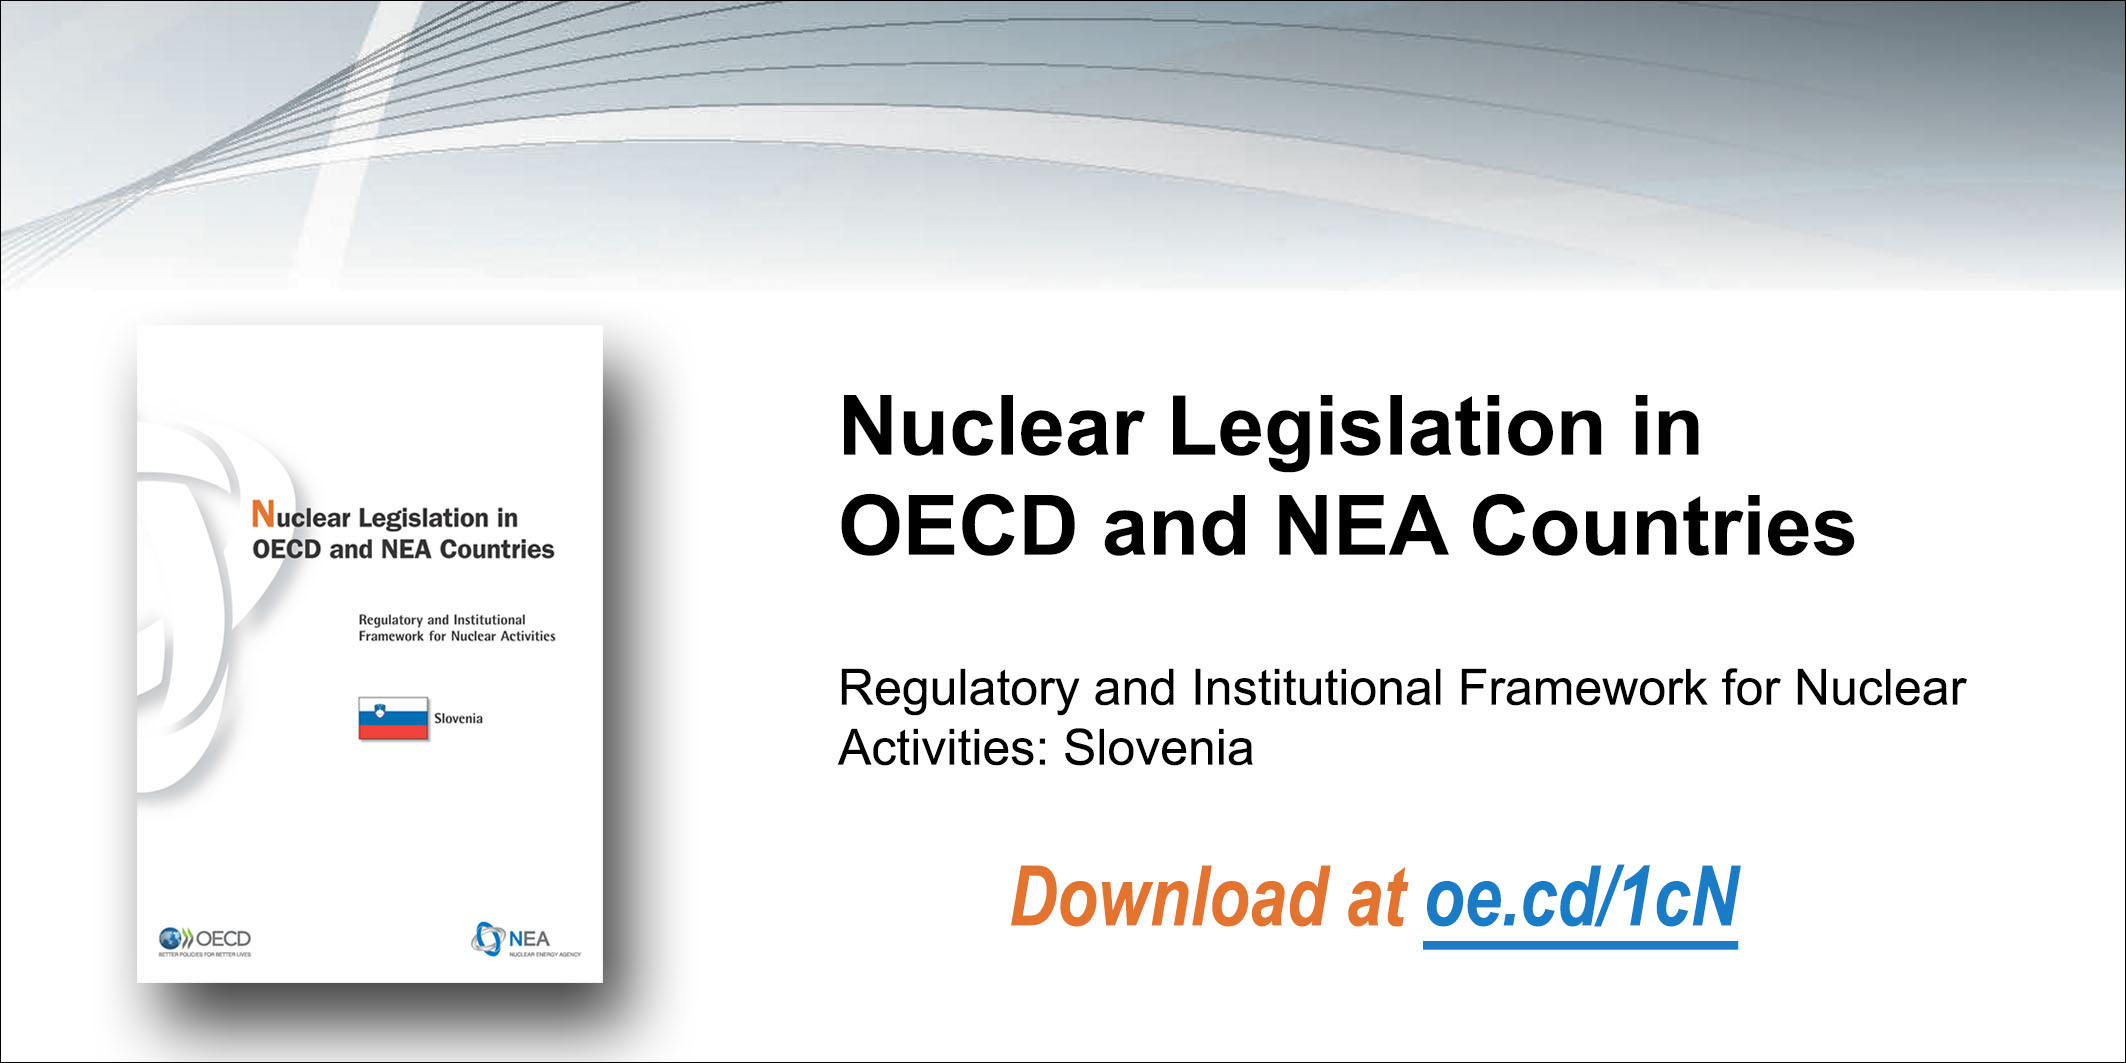 Nuclear Law Bulletin No. 95